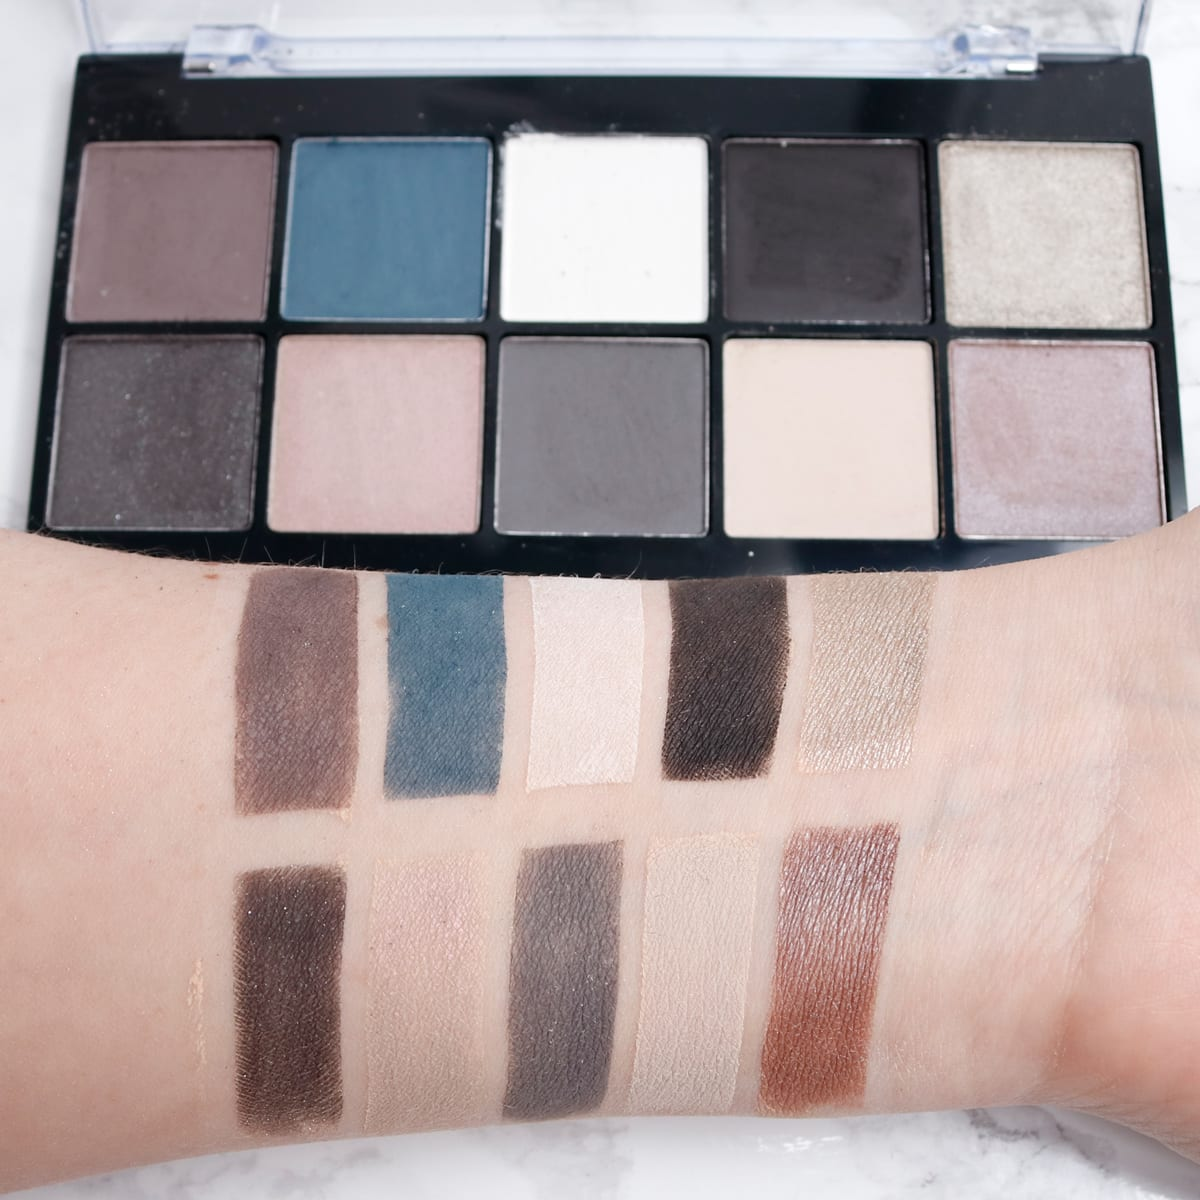 Nyx Gloomy Days Perfect Filter Shadow Palette Swatched On